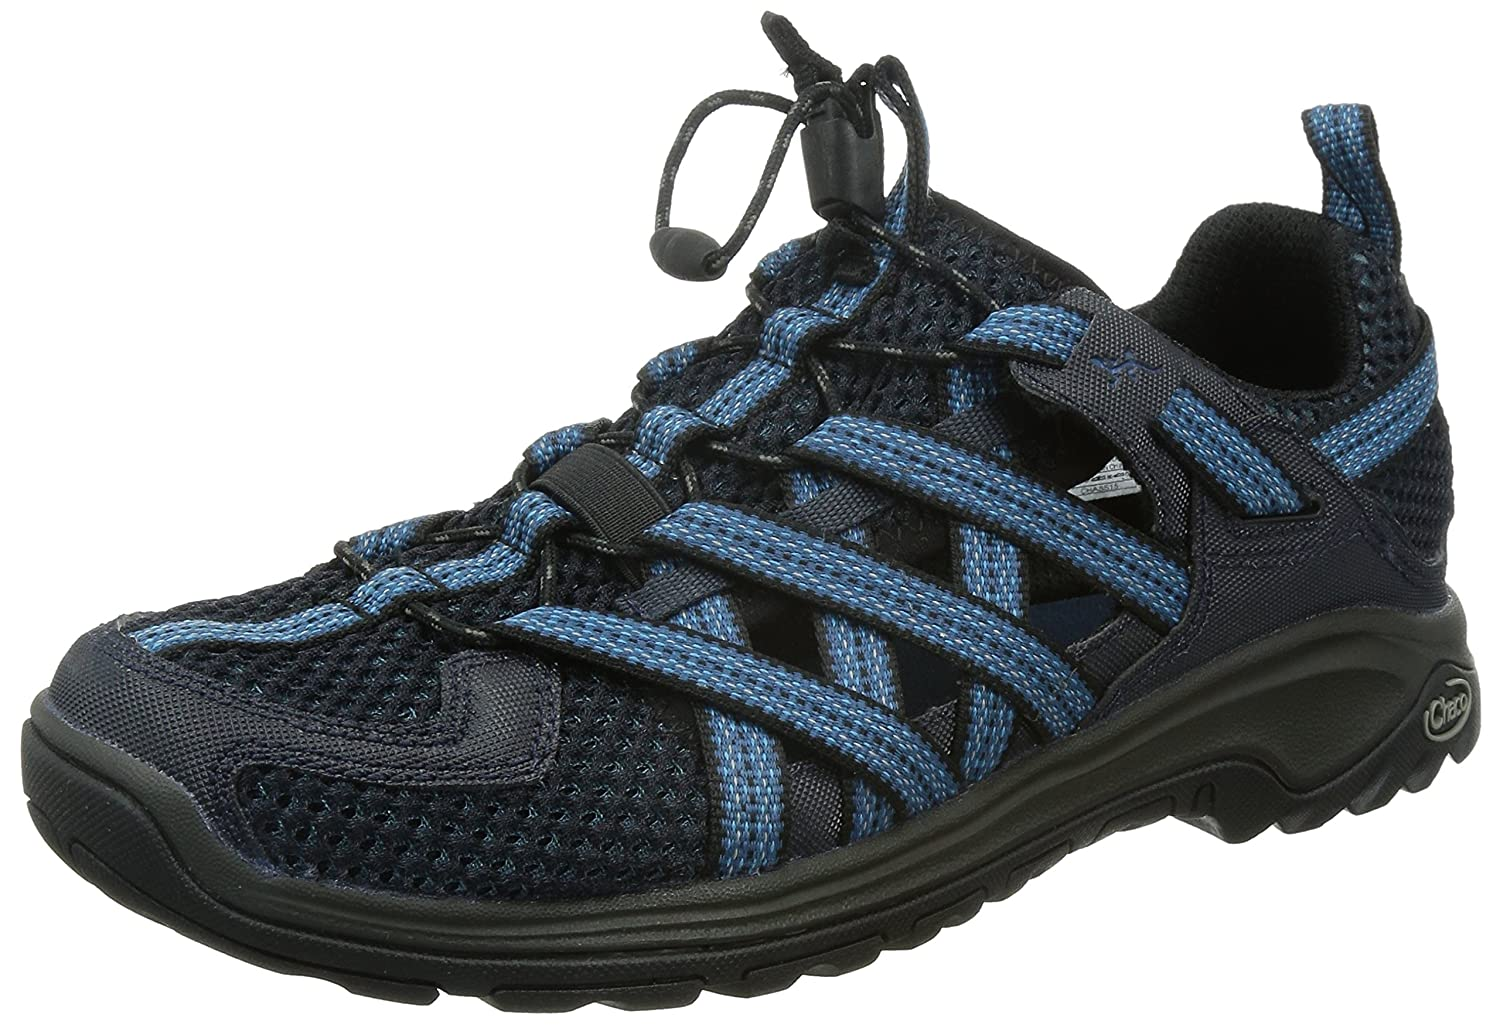 Salute Chaco Men's Outcross Evo 1 Hiking chaussures 14 D(M) US